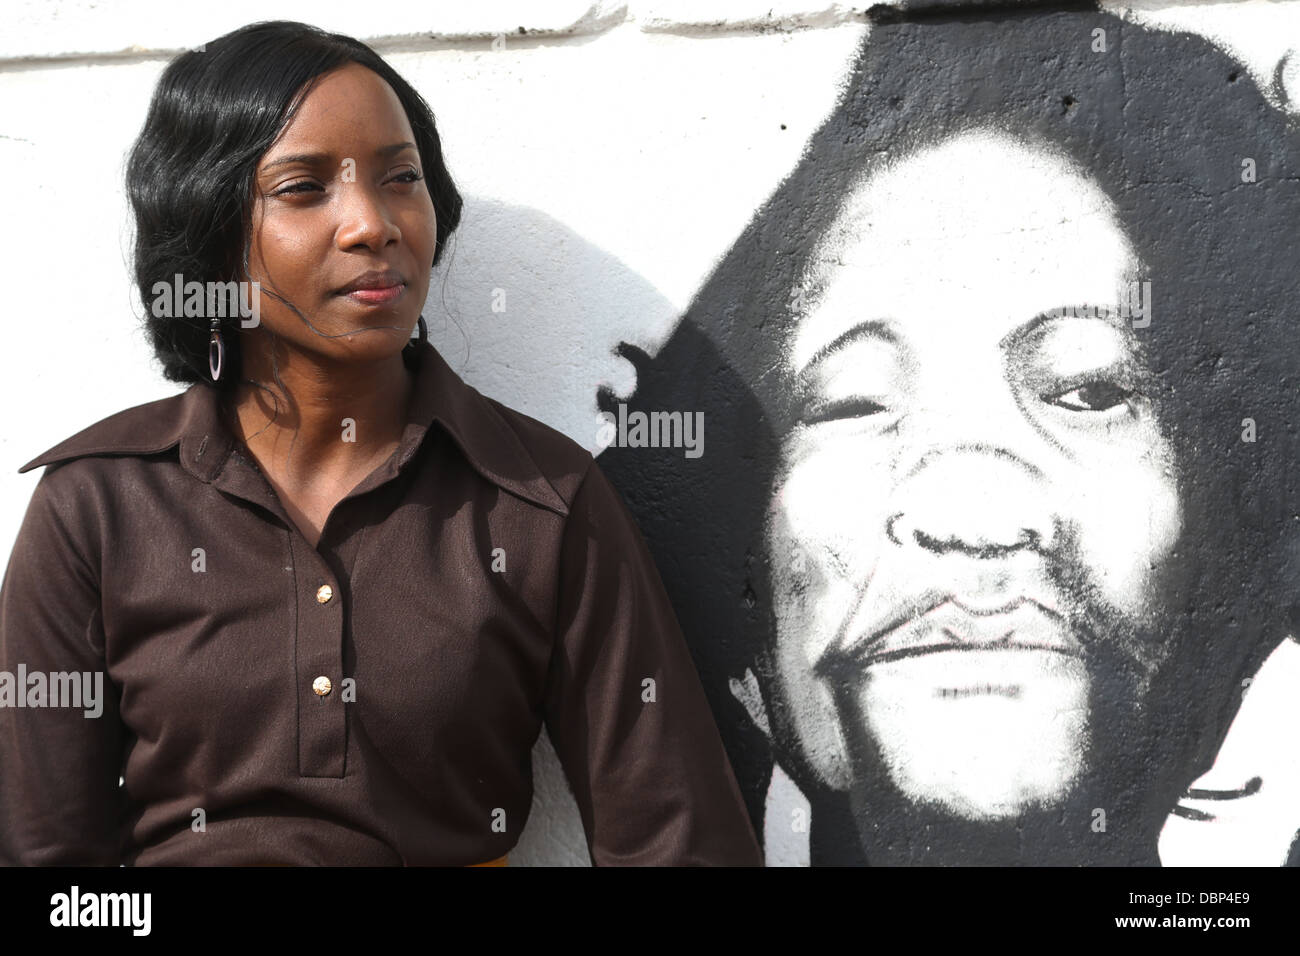 Musician Kamande poses for a picture on a wall with Dedan Kimathi's(Mau Mau Hero) painting. - Stock Image